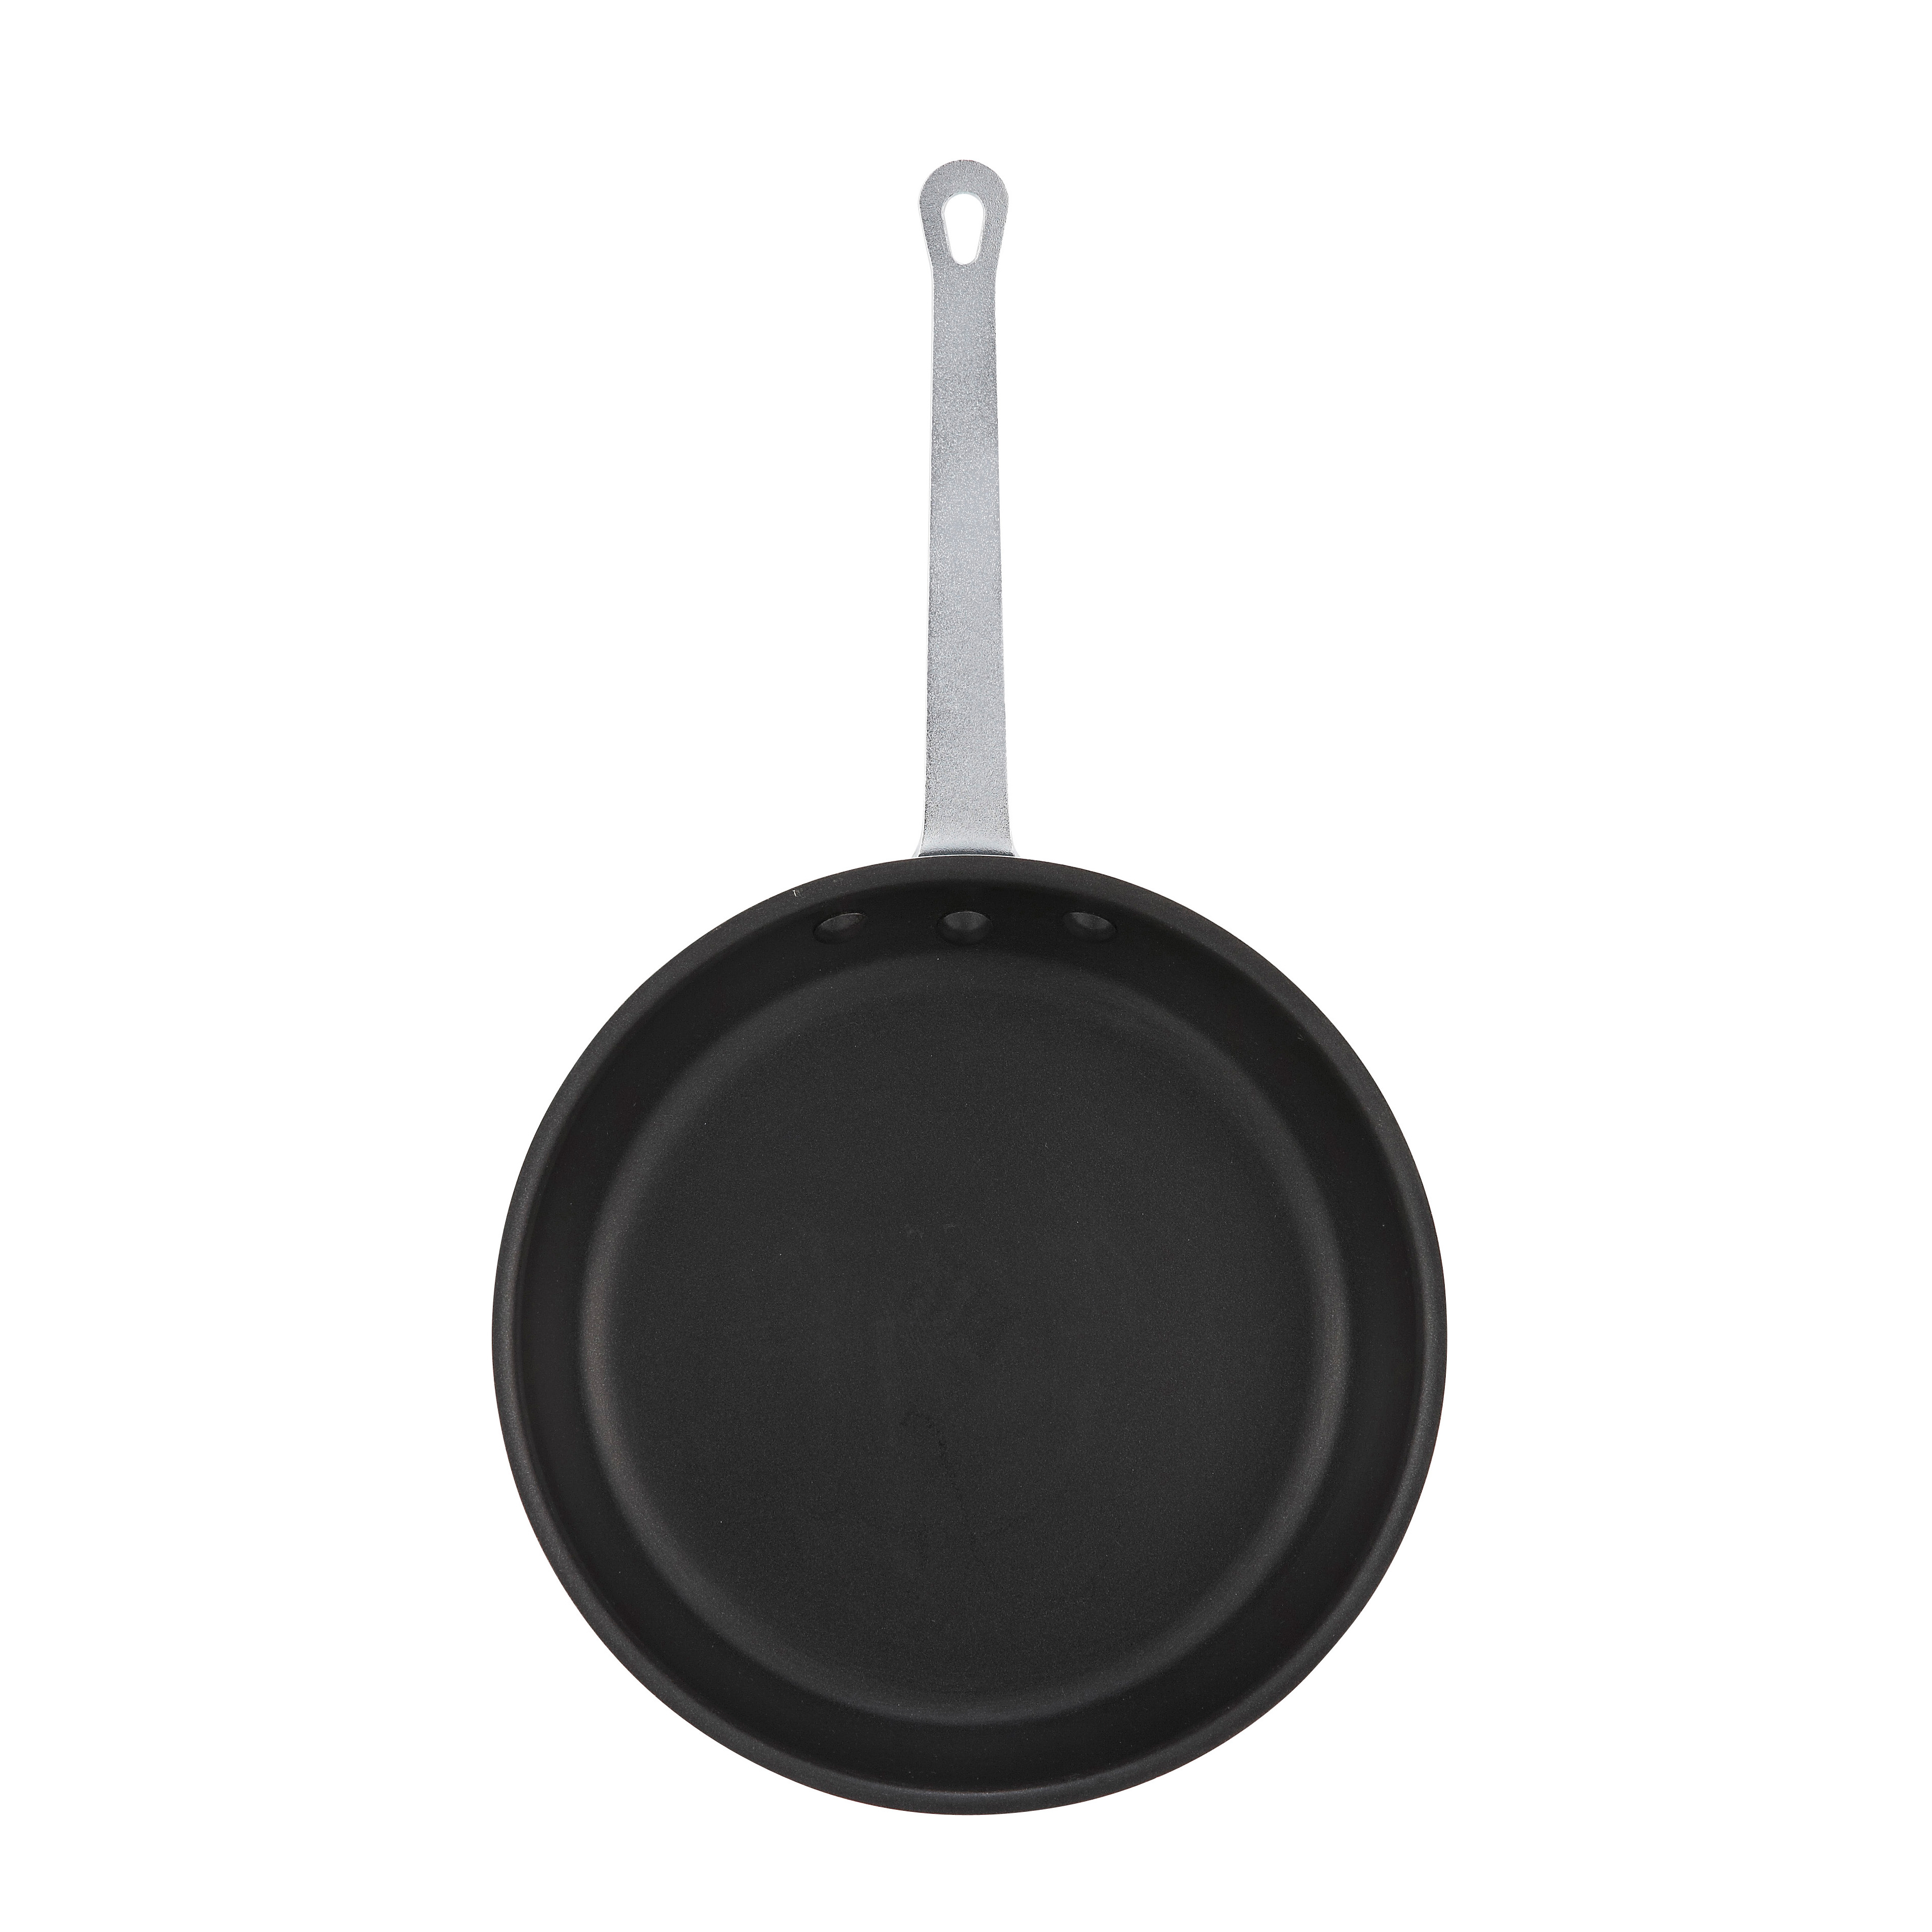 Winco AFP-8XC fry pan